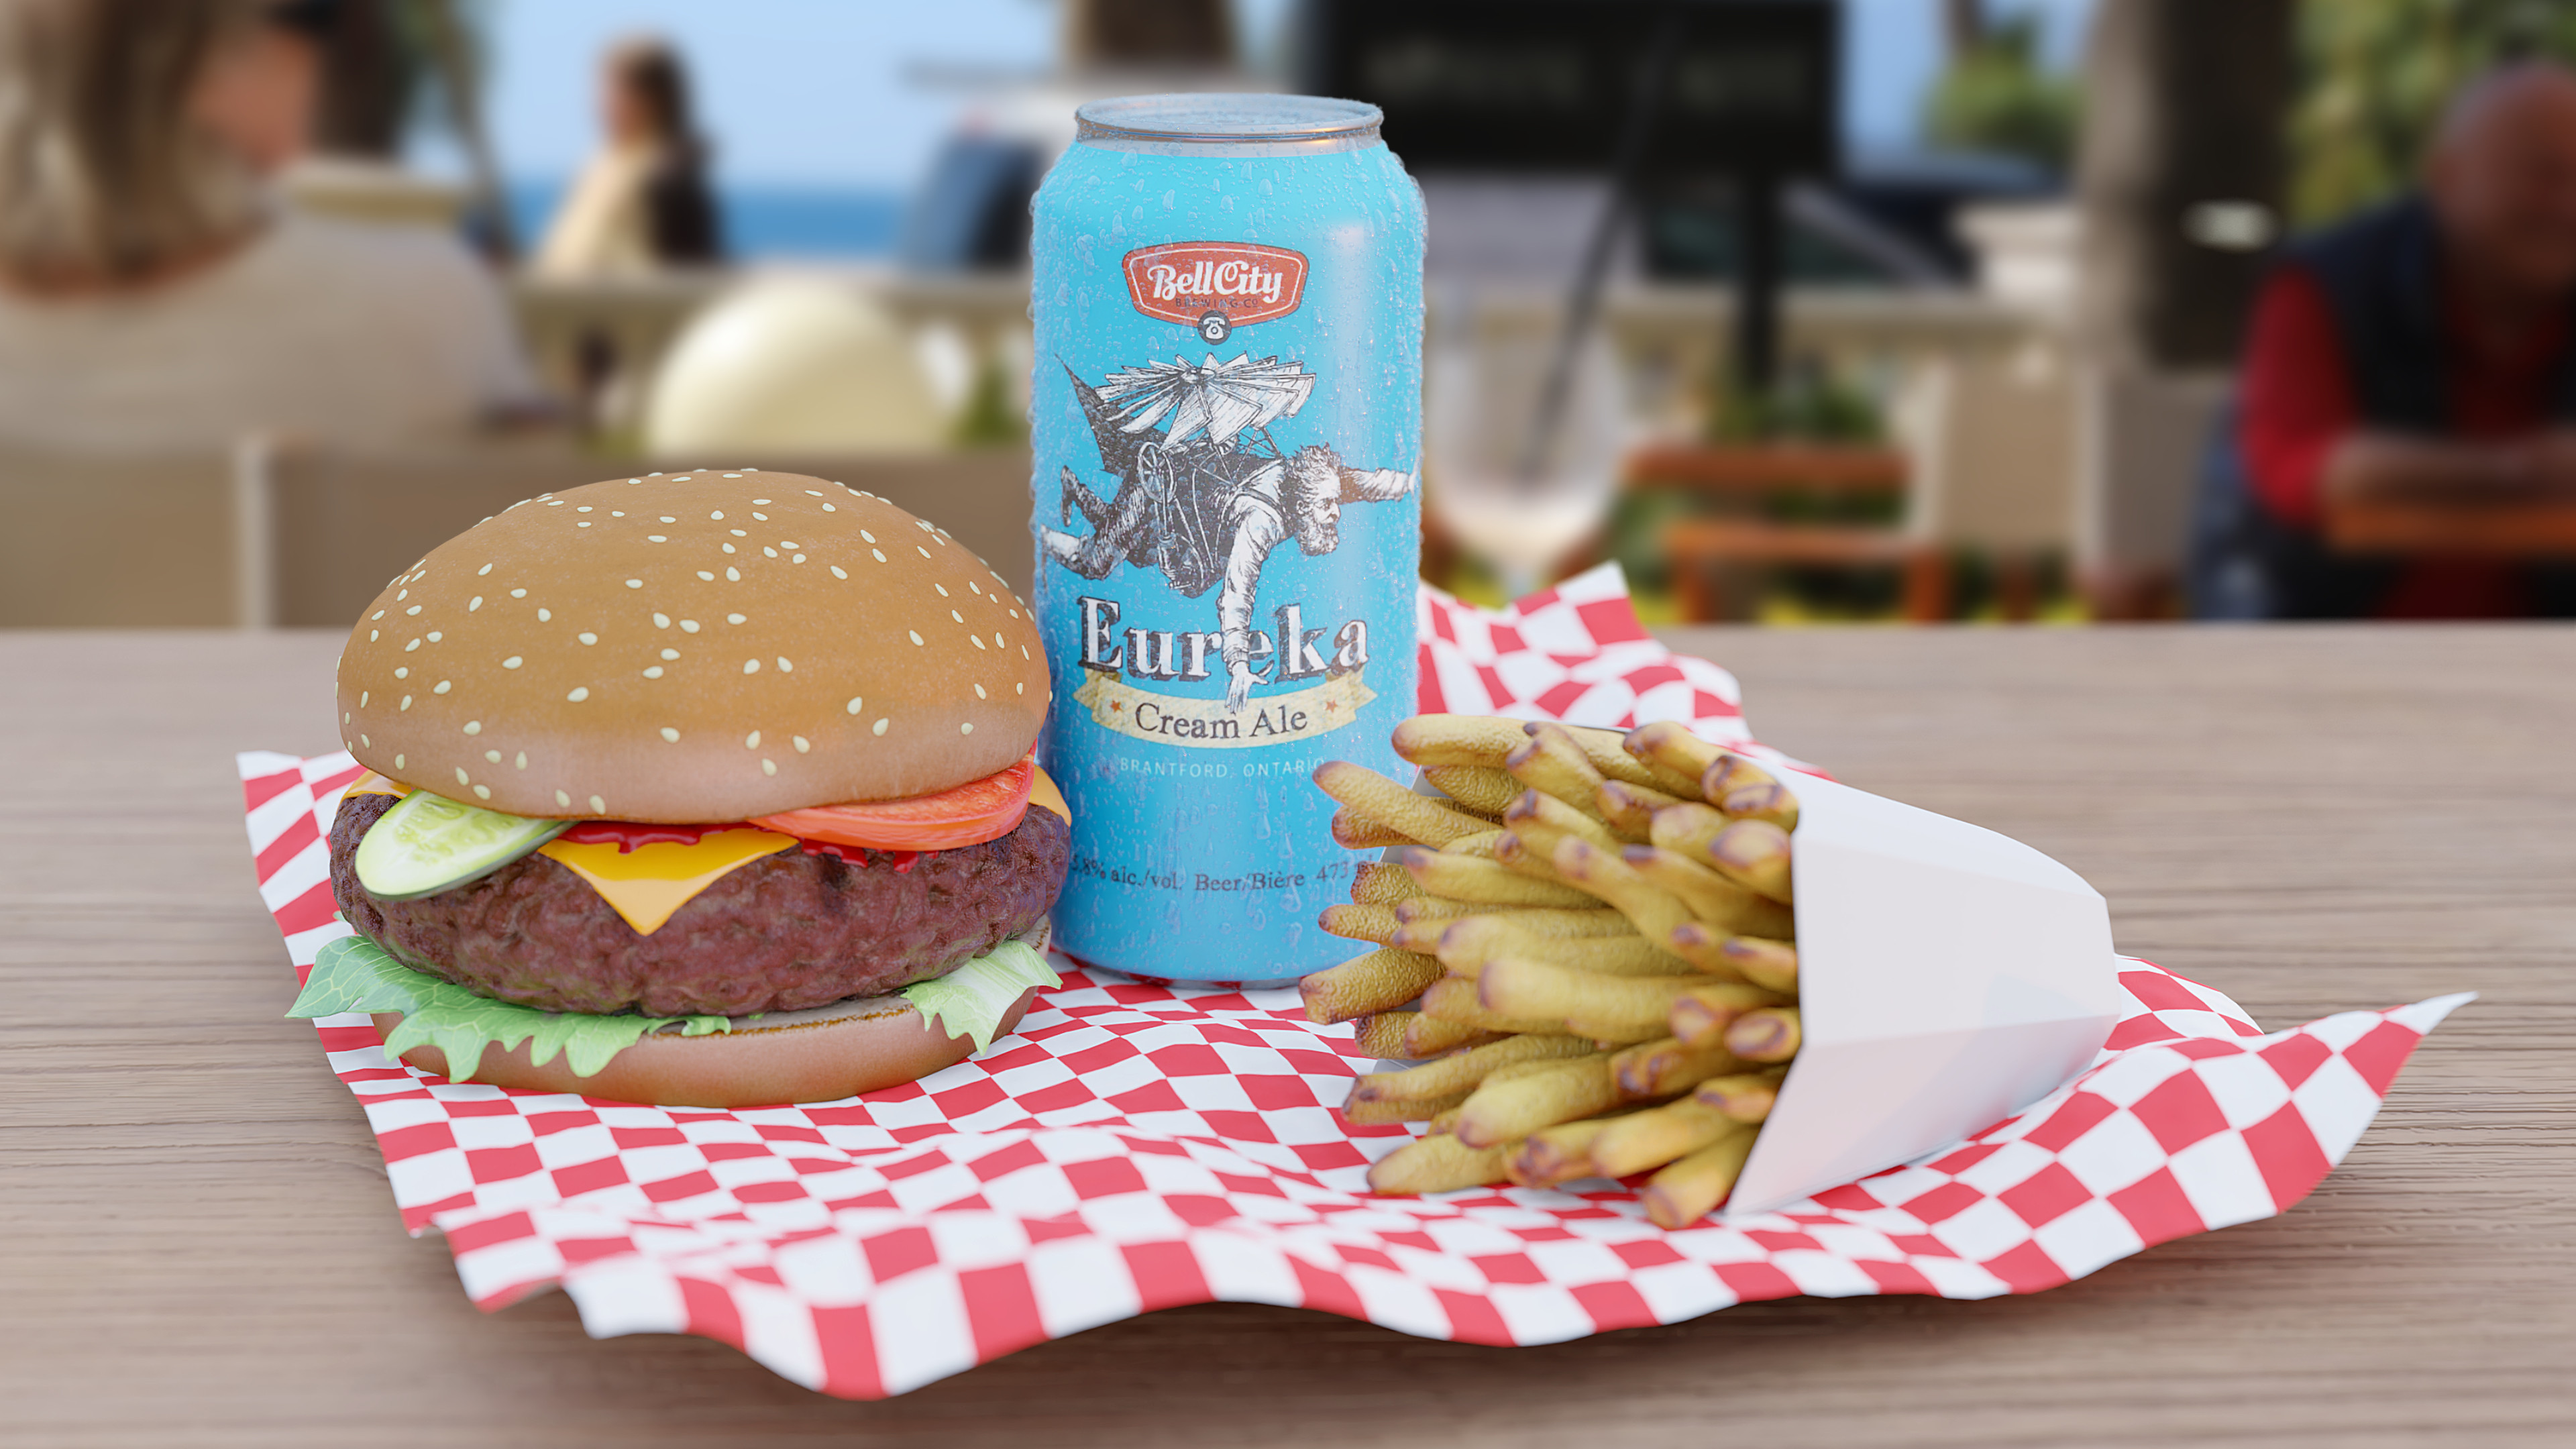 Eureka beer and burger with fries!